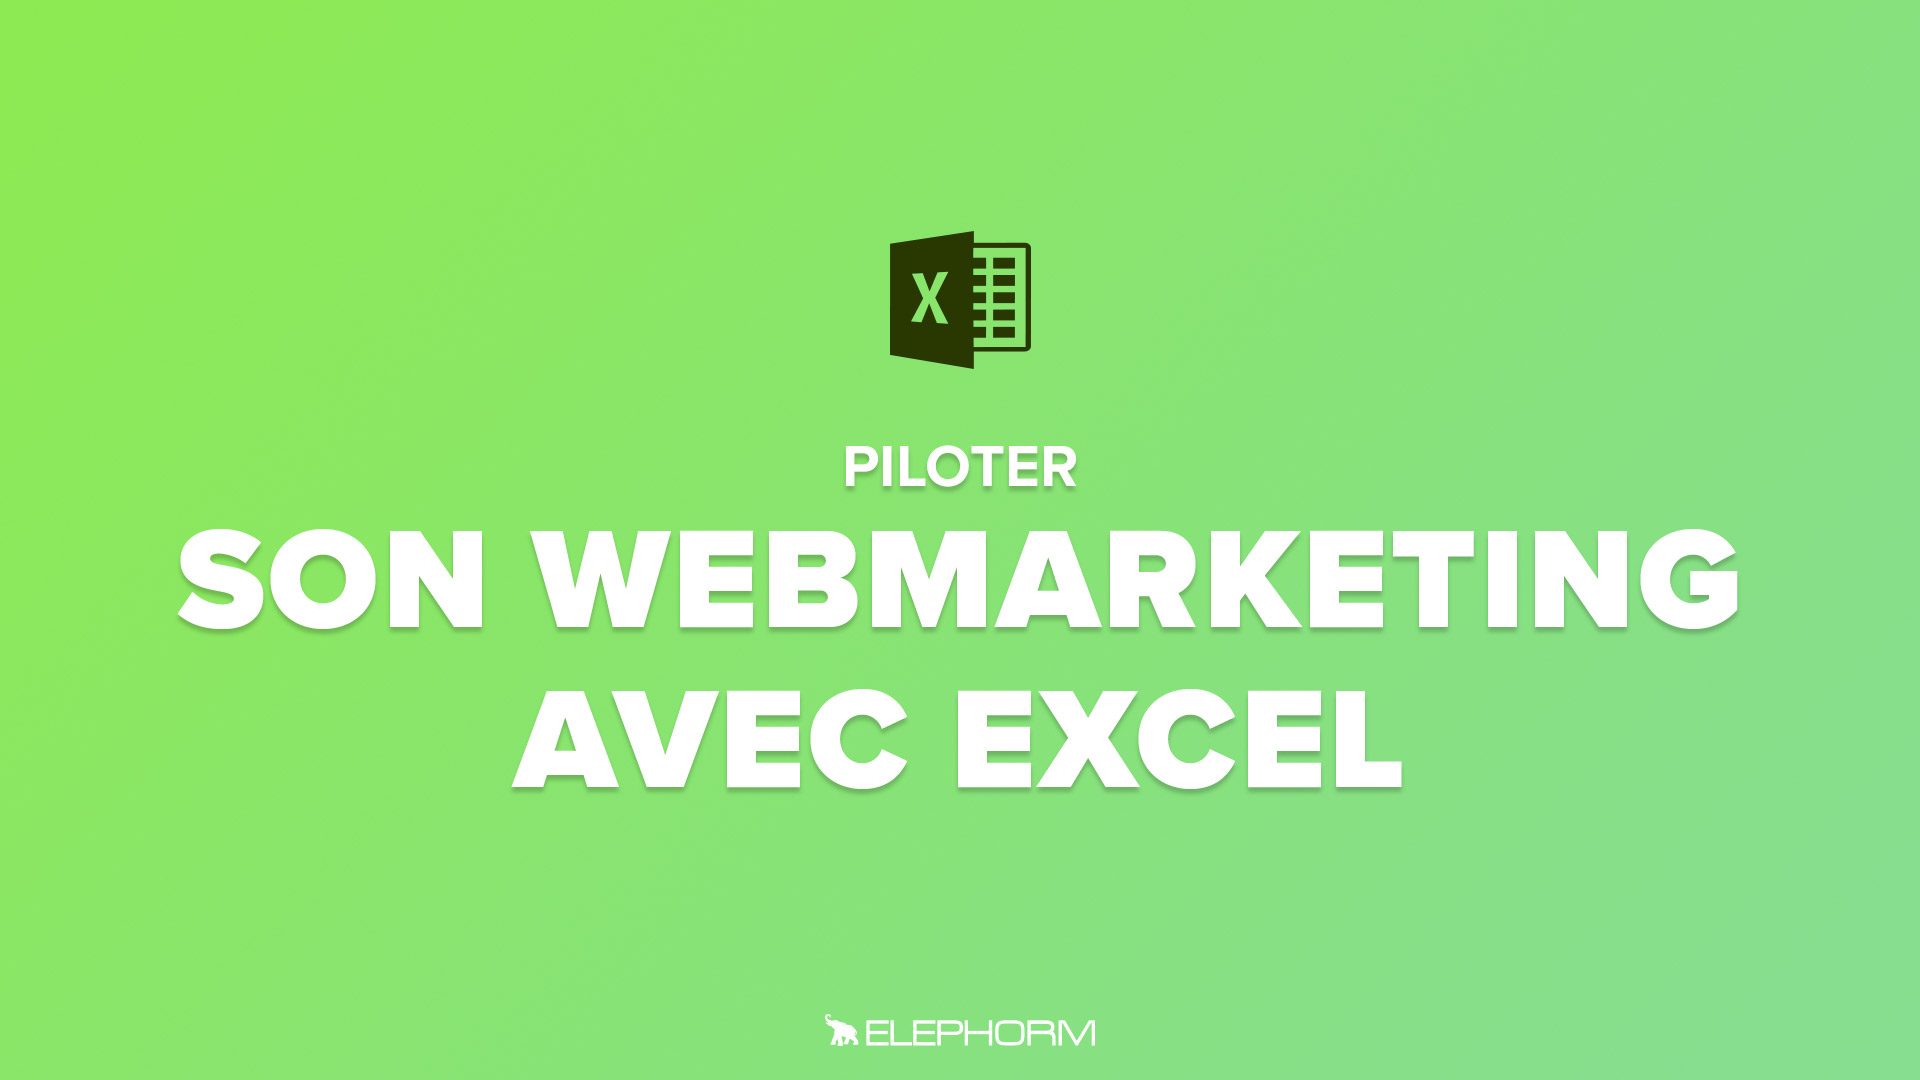 Piloter son webmarketing avec Excel